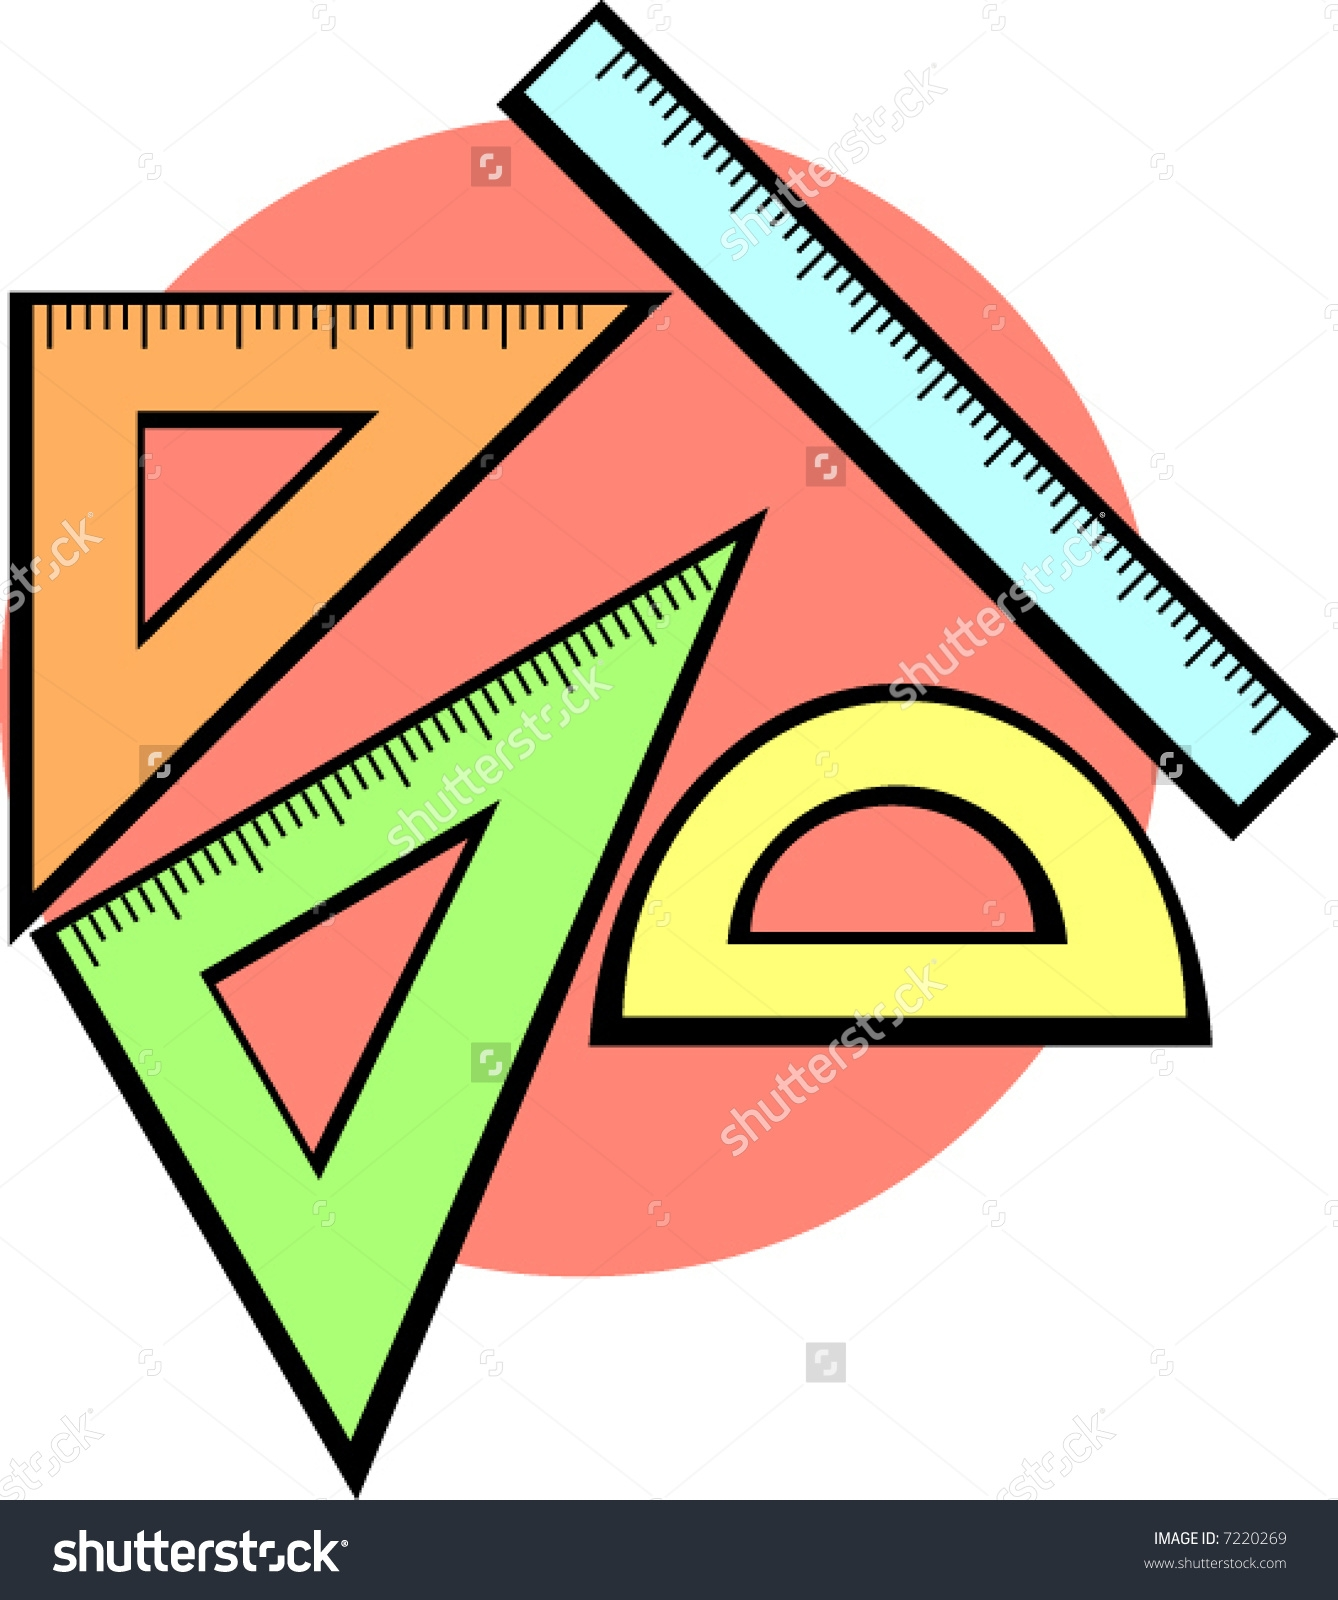 Geometry clipart geometry tool. Free download best on